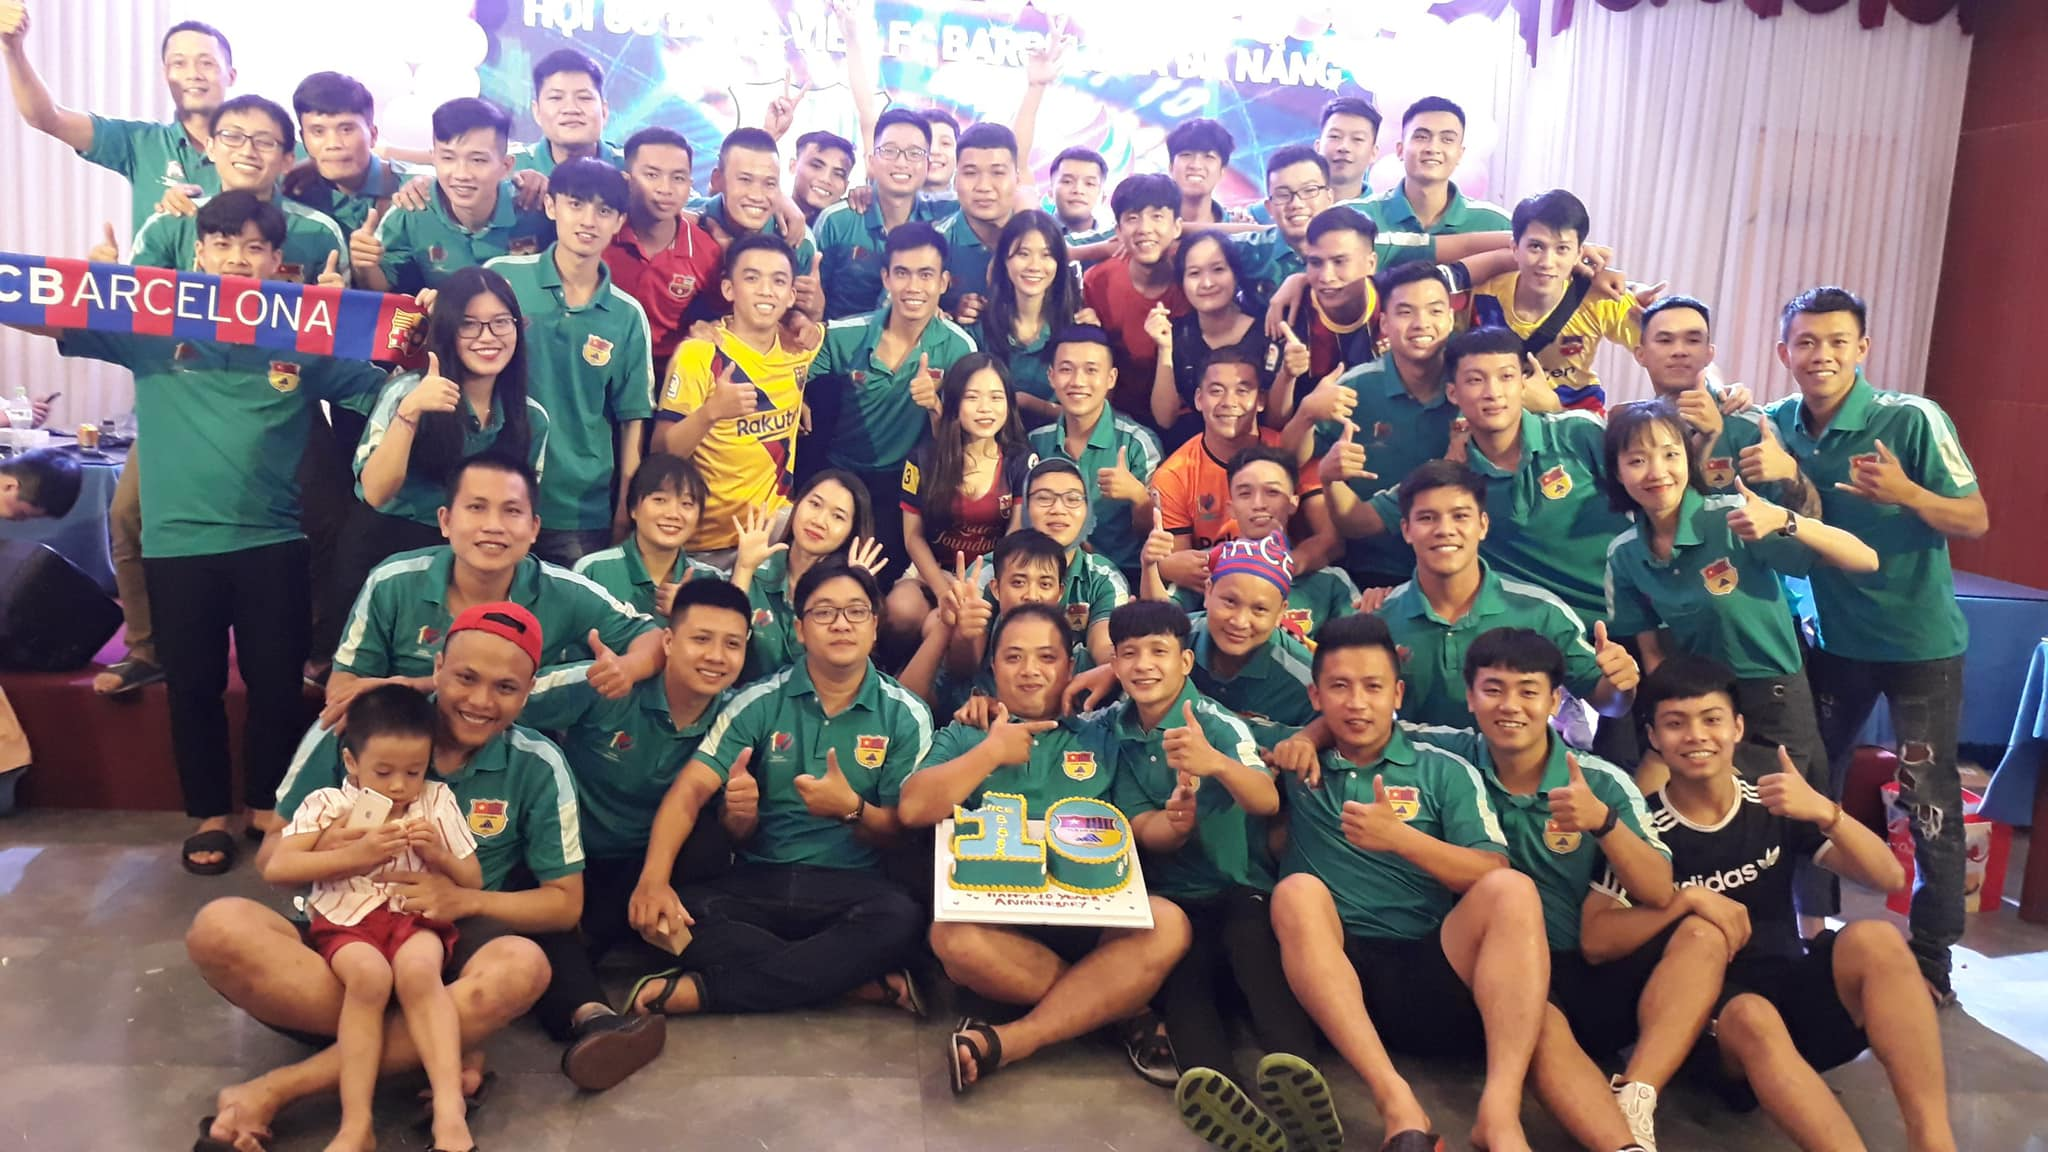 FCB Đà Nẵng: Together, we make the miracle